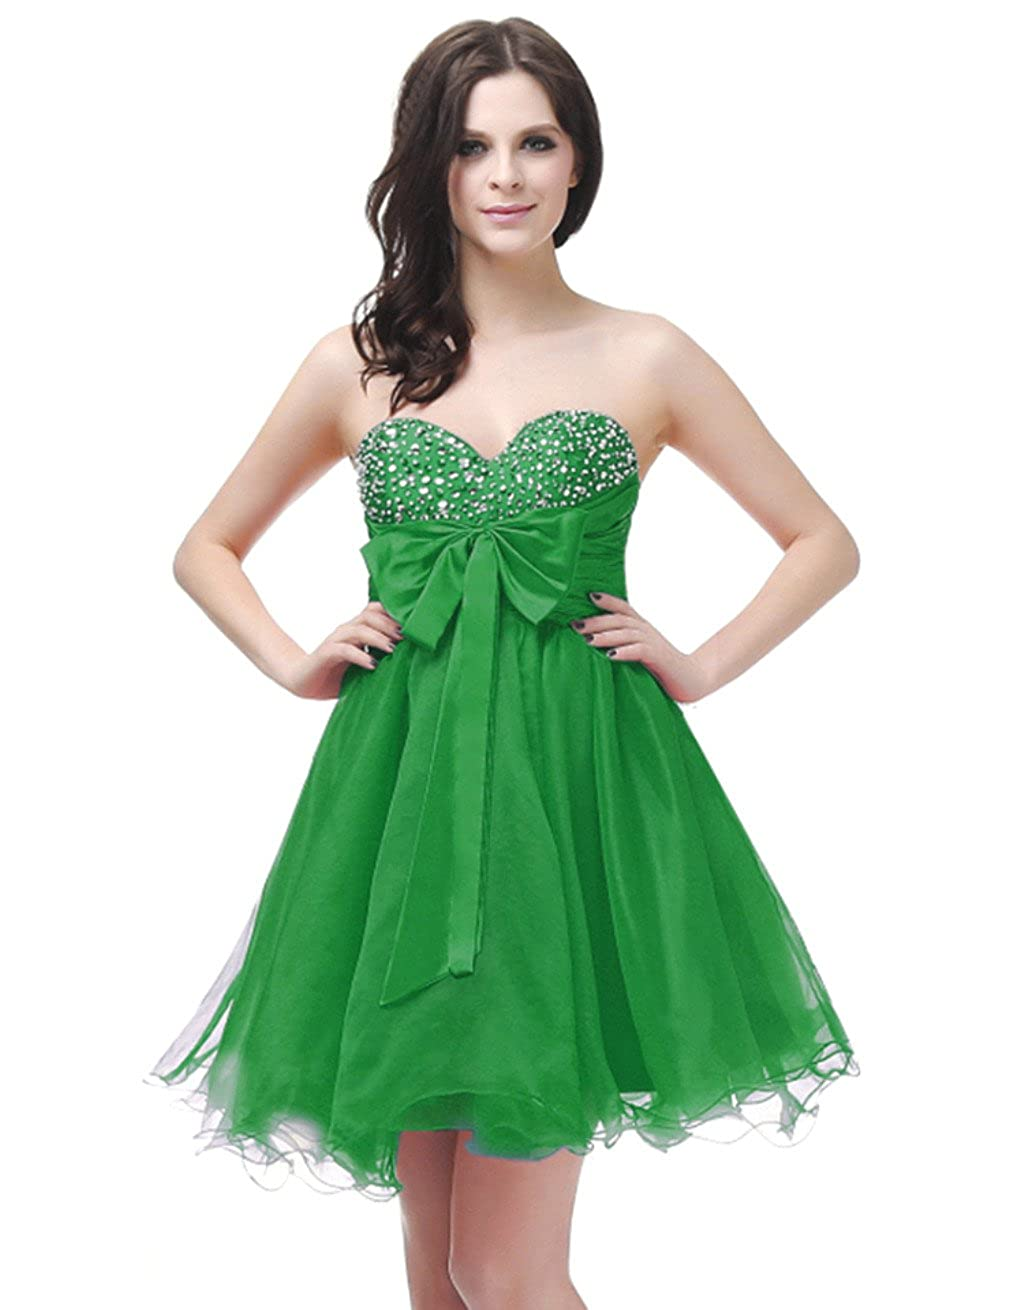 Emerald Vantexi Women's Organza Short Beaded Homecoming Dress Prom Gown